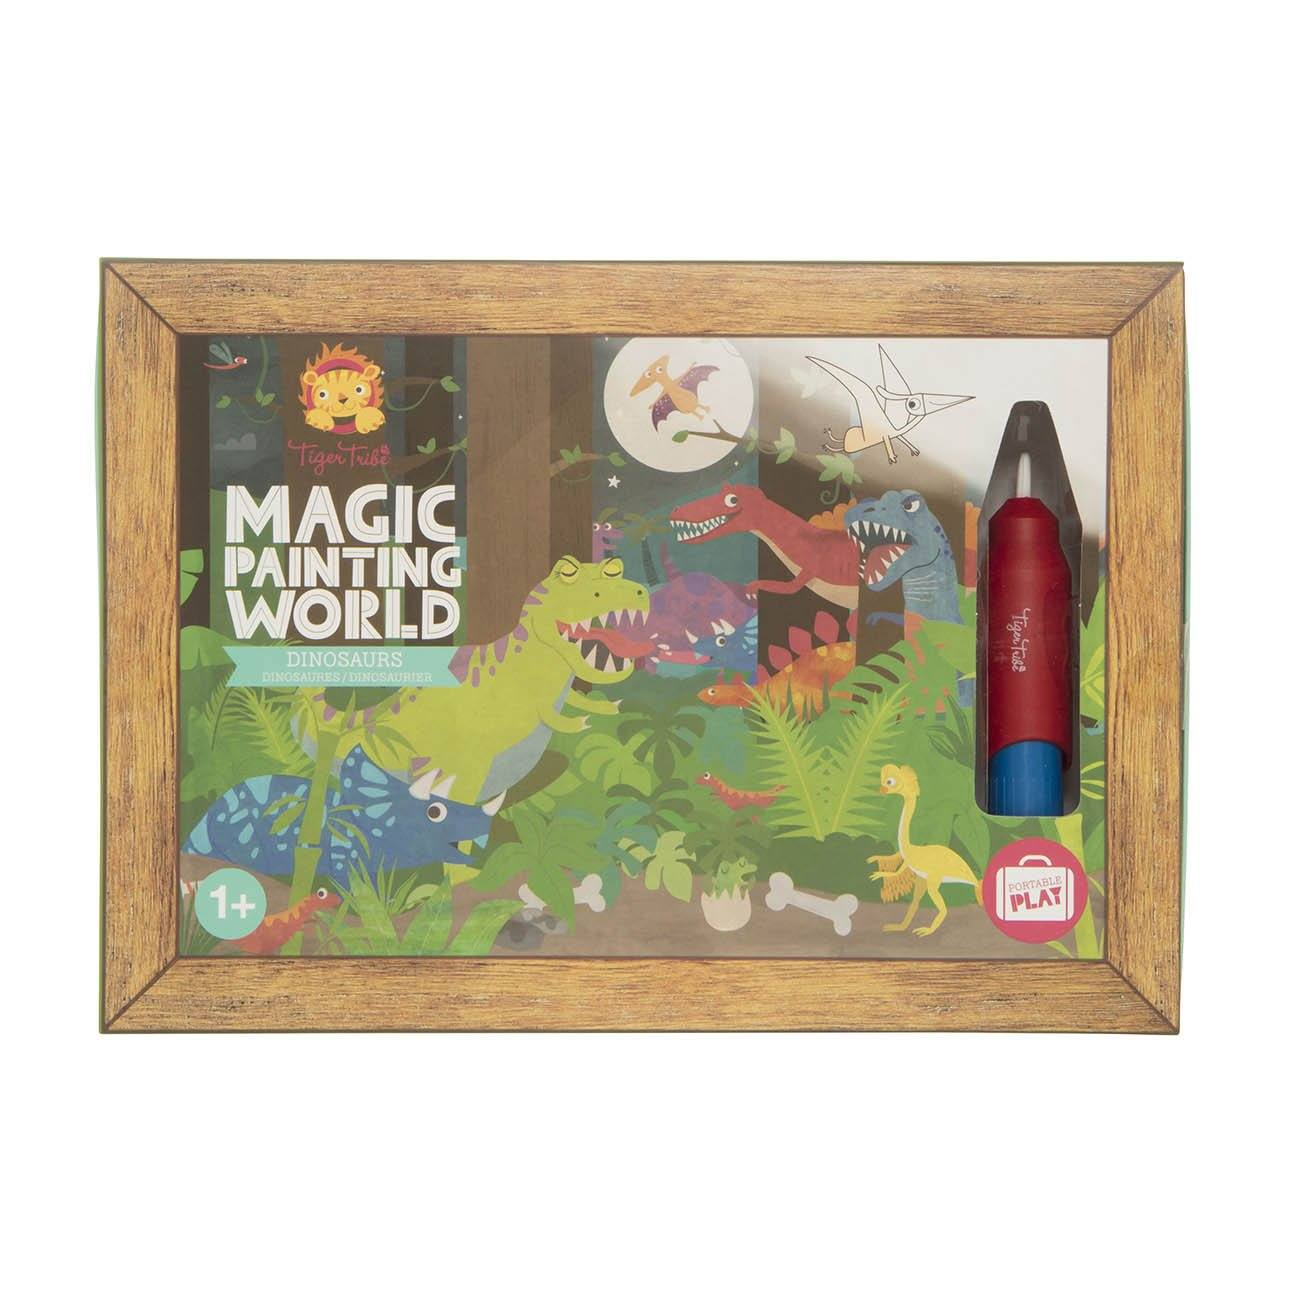 Magic Painting World (Dinosaurs)